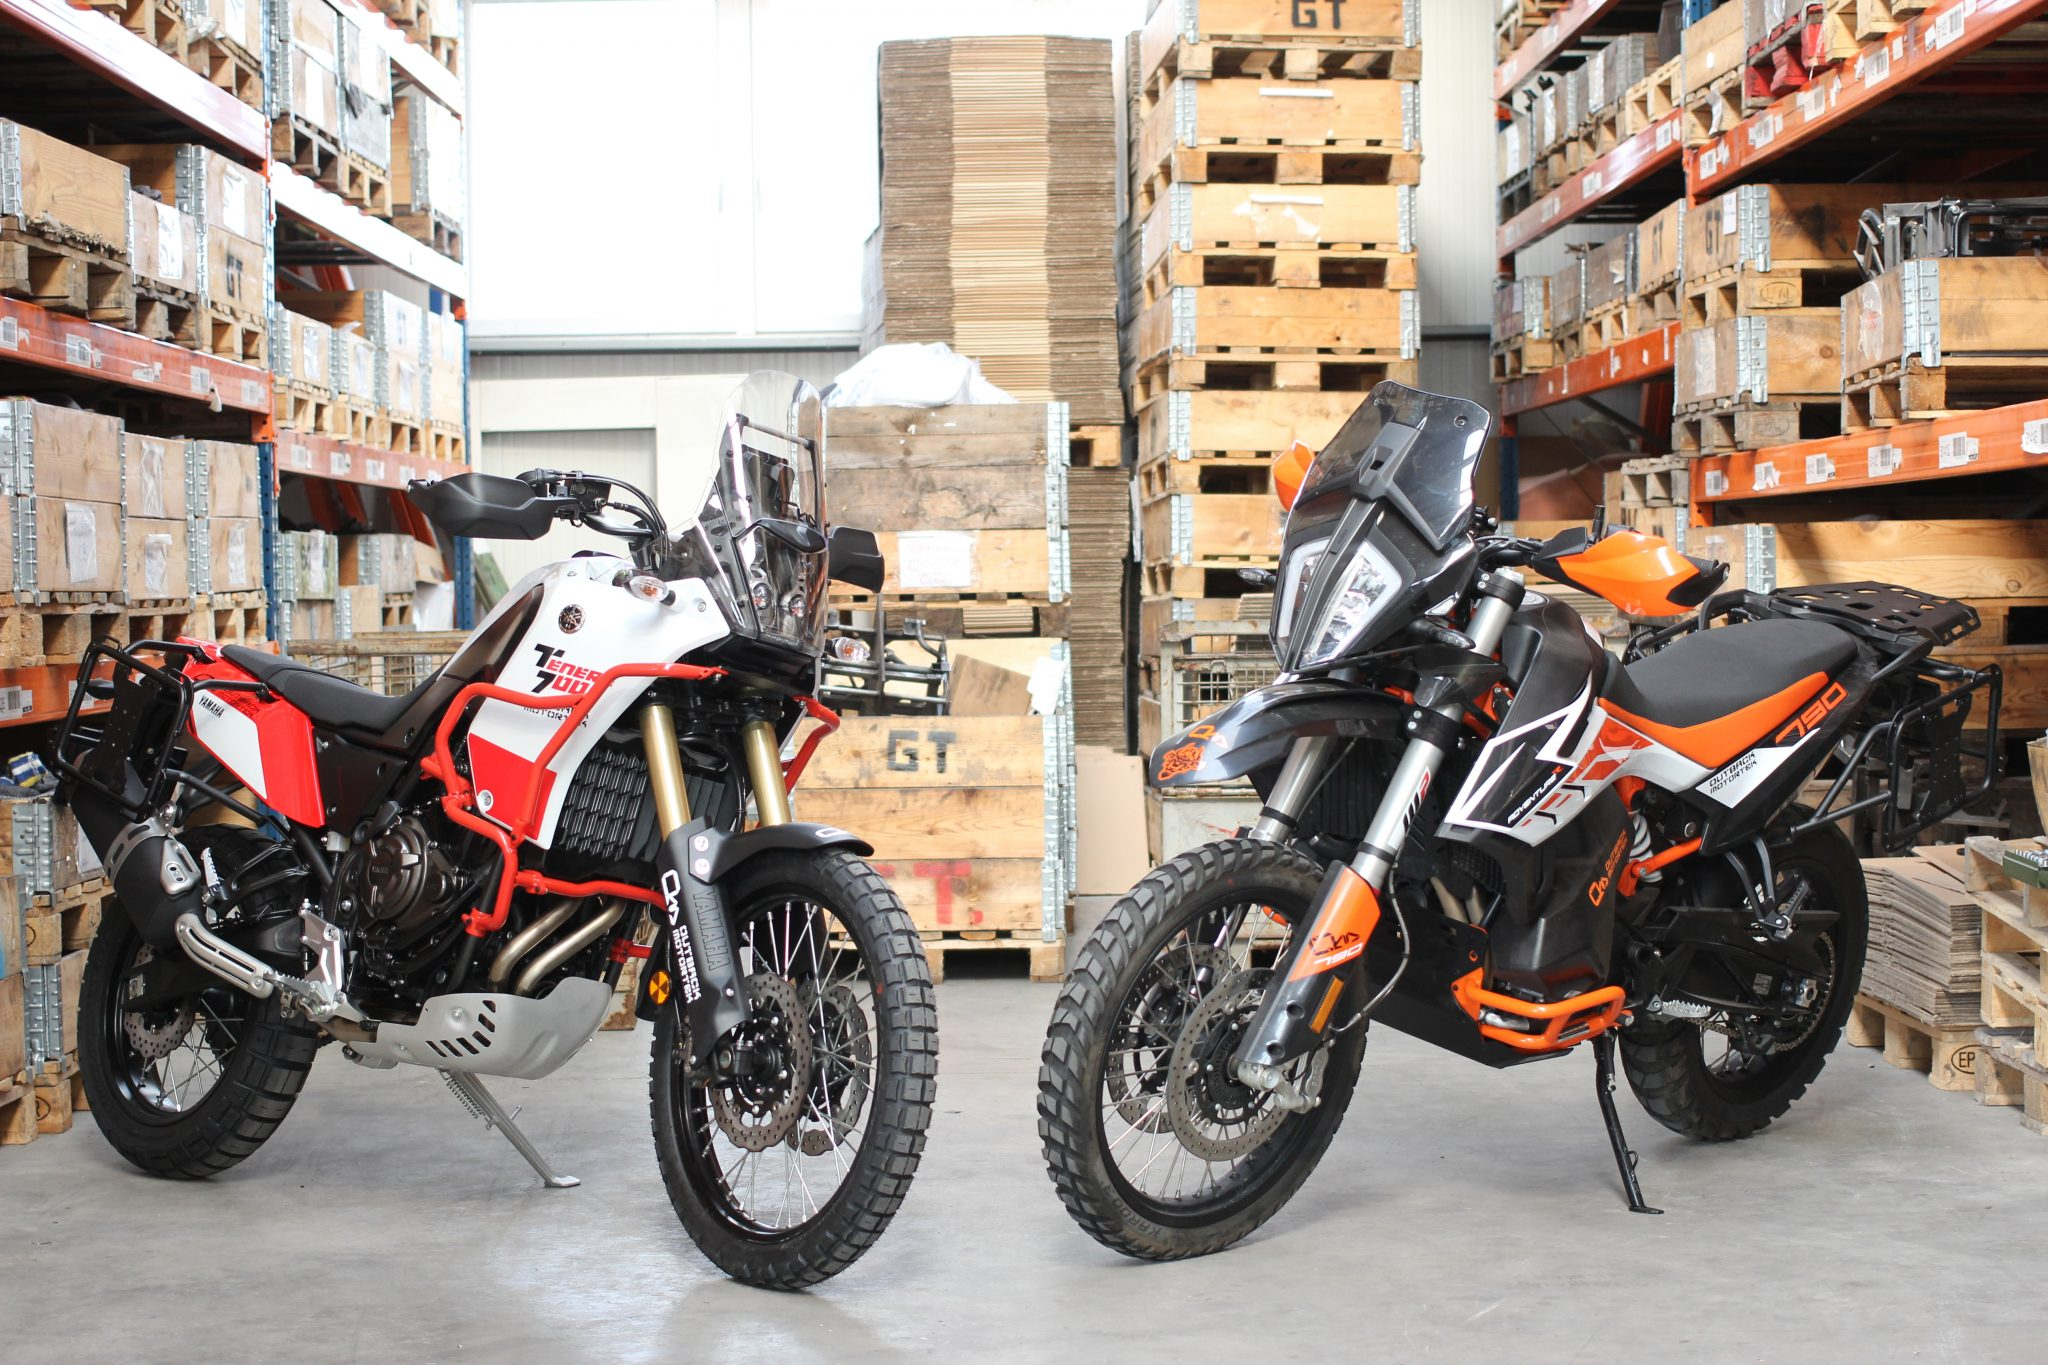 Our Test Ride Review Of Yamaha Tenere 700 Vs Ktm 790 Adventure Outback Motortek